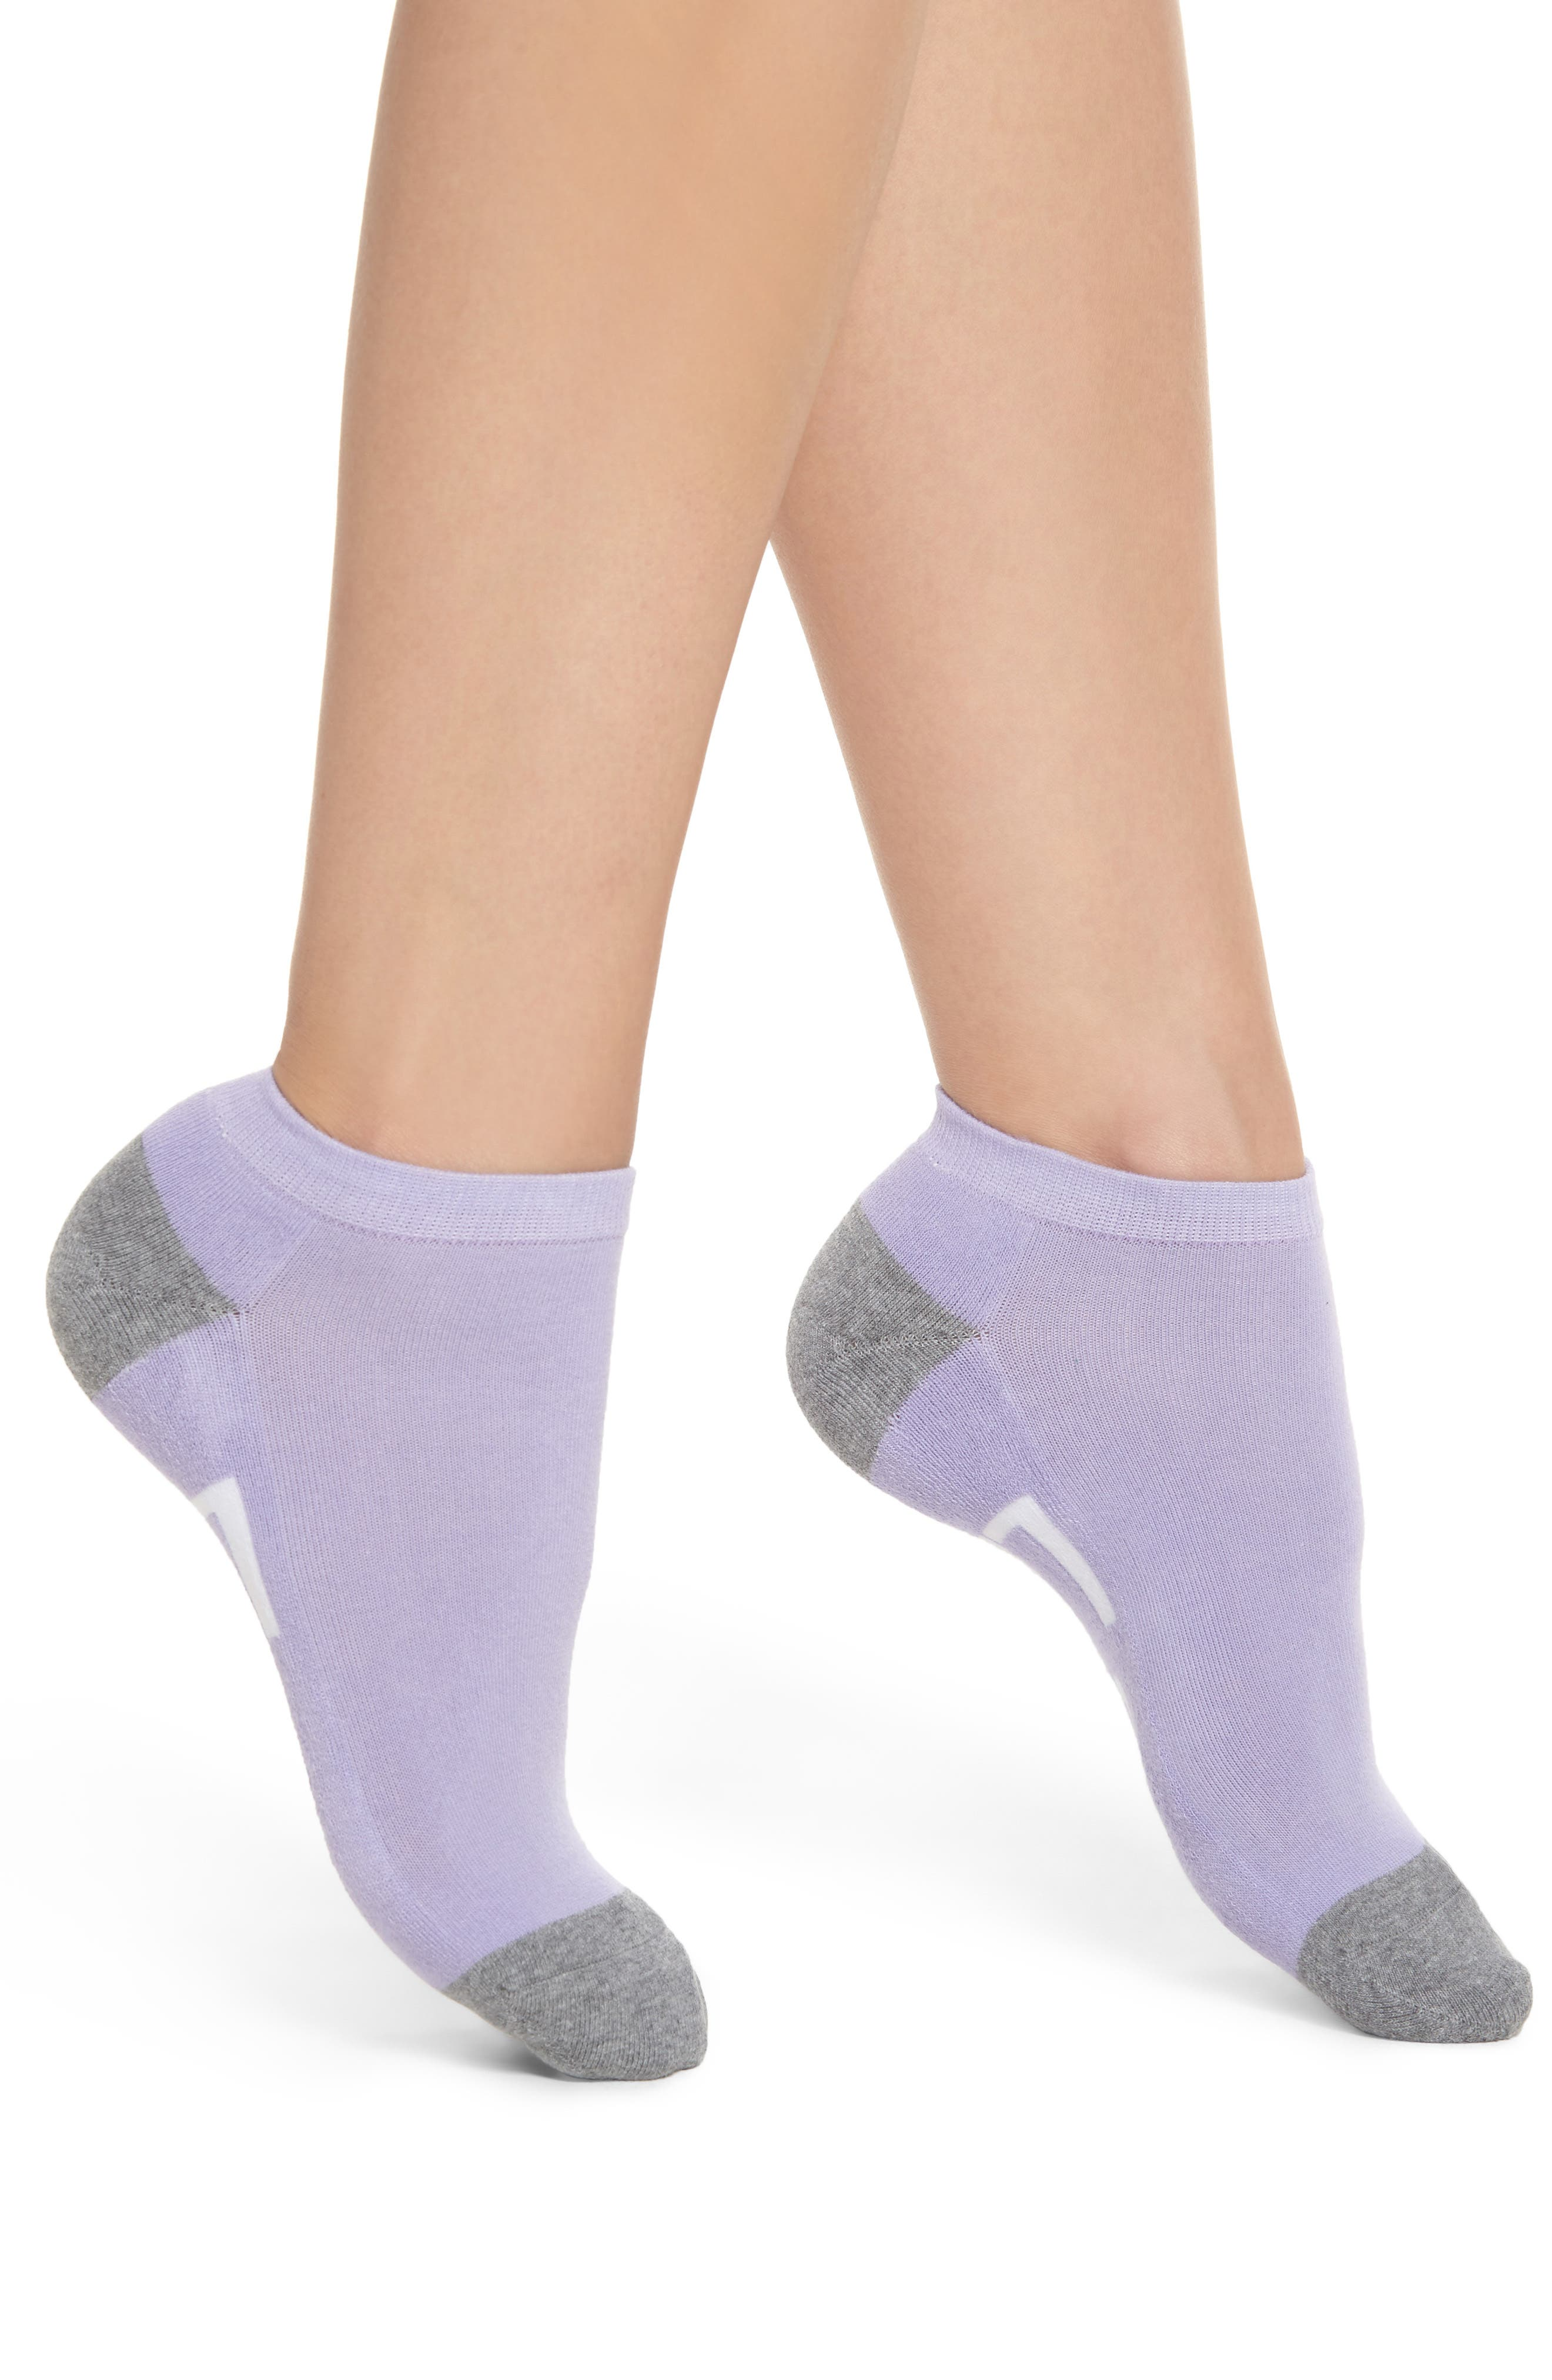 Cat Lady Ankle Socks,                             Main thumbnail 1, color,